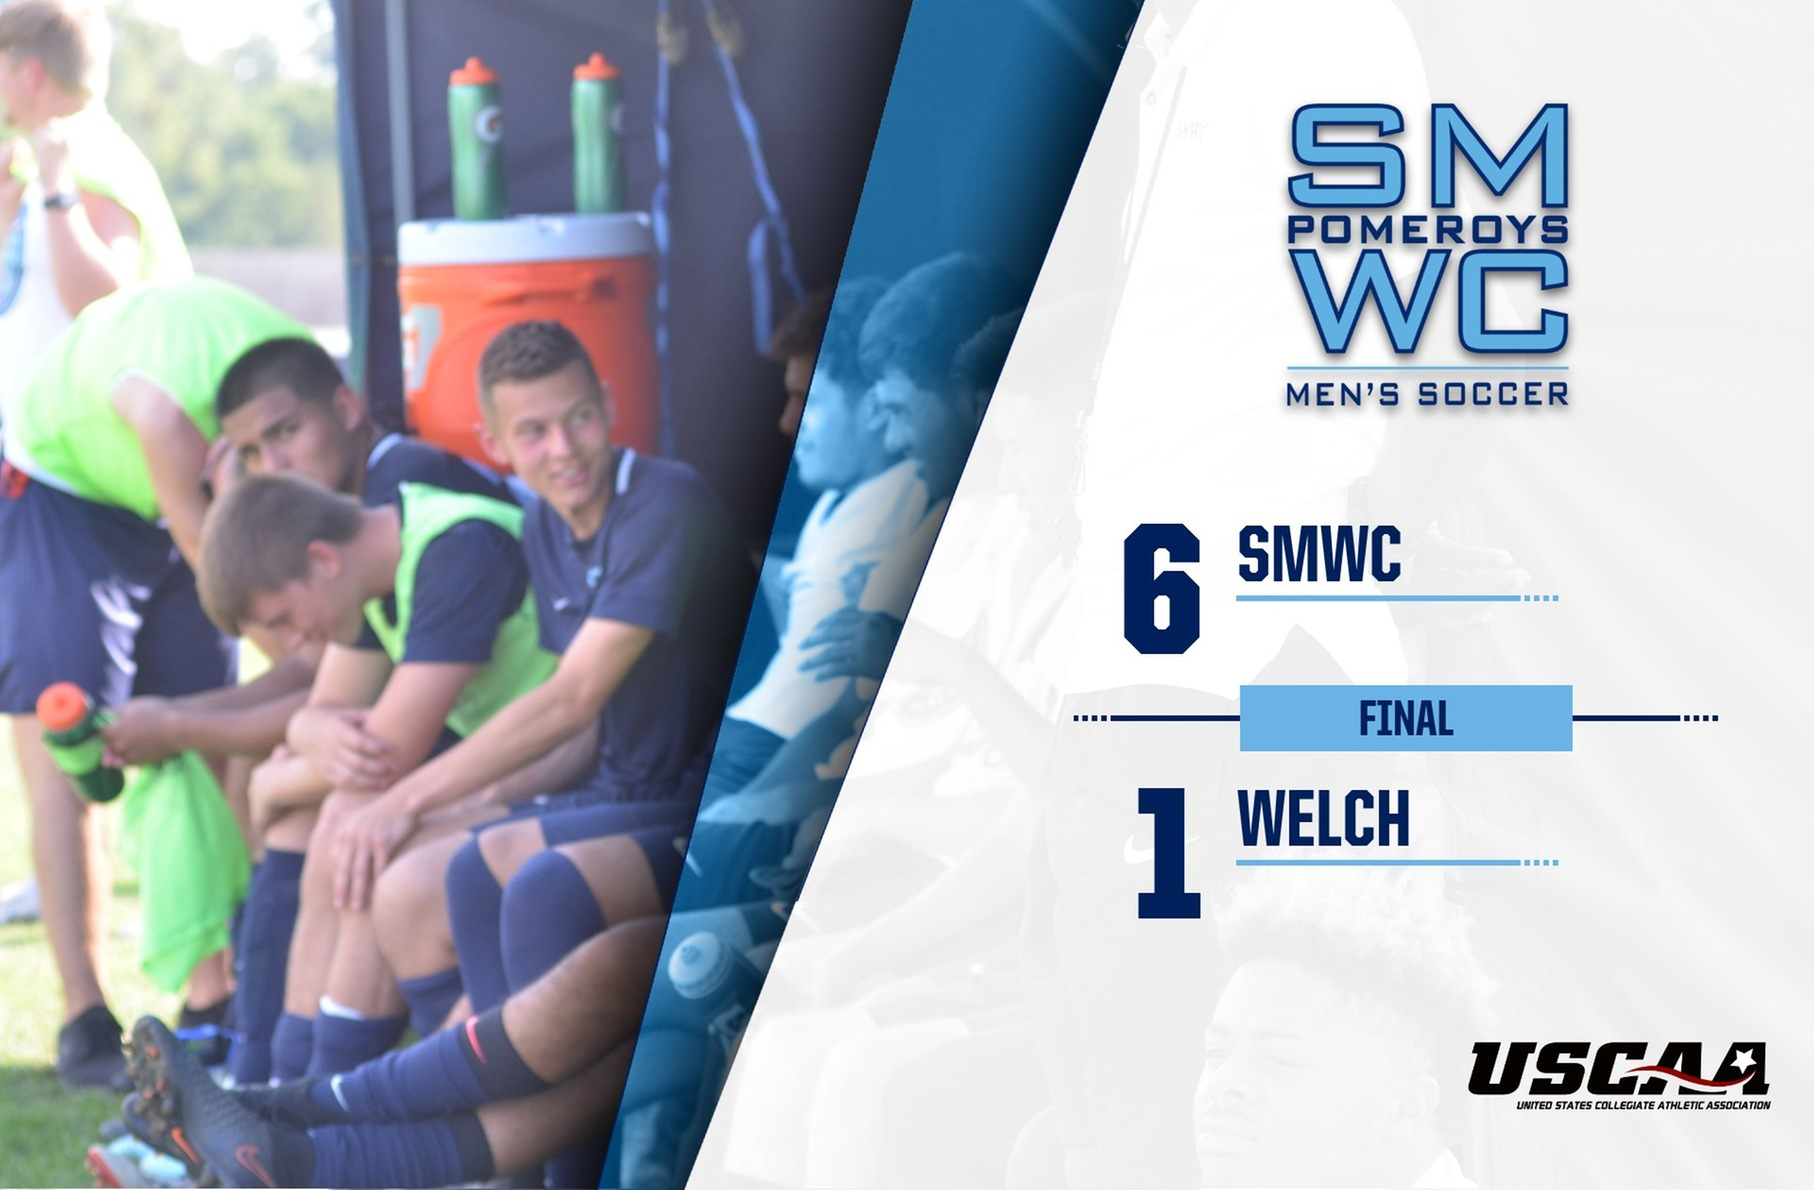 Men's Soccer Starts New Win Streak with 6-1 Victory Over Welch